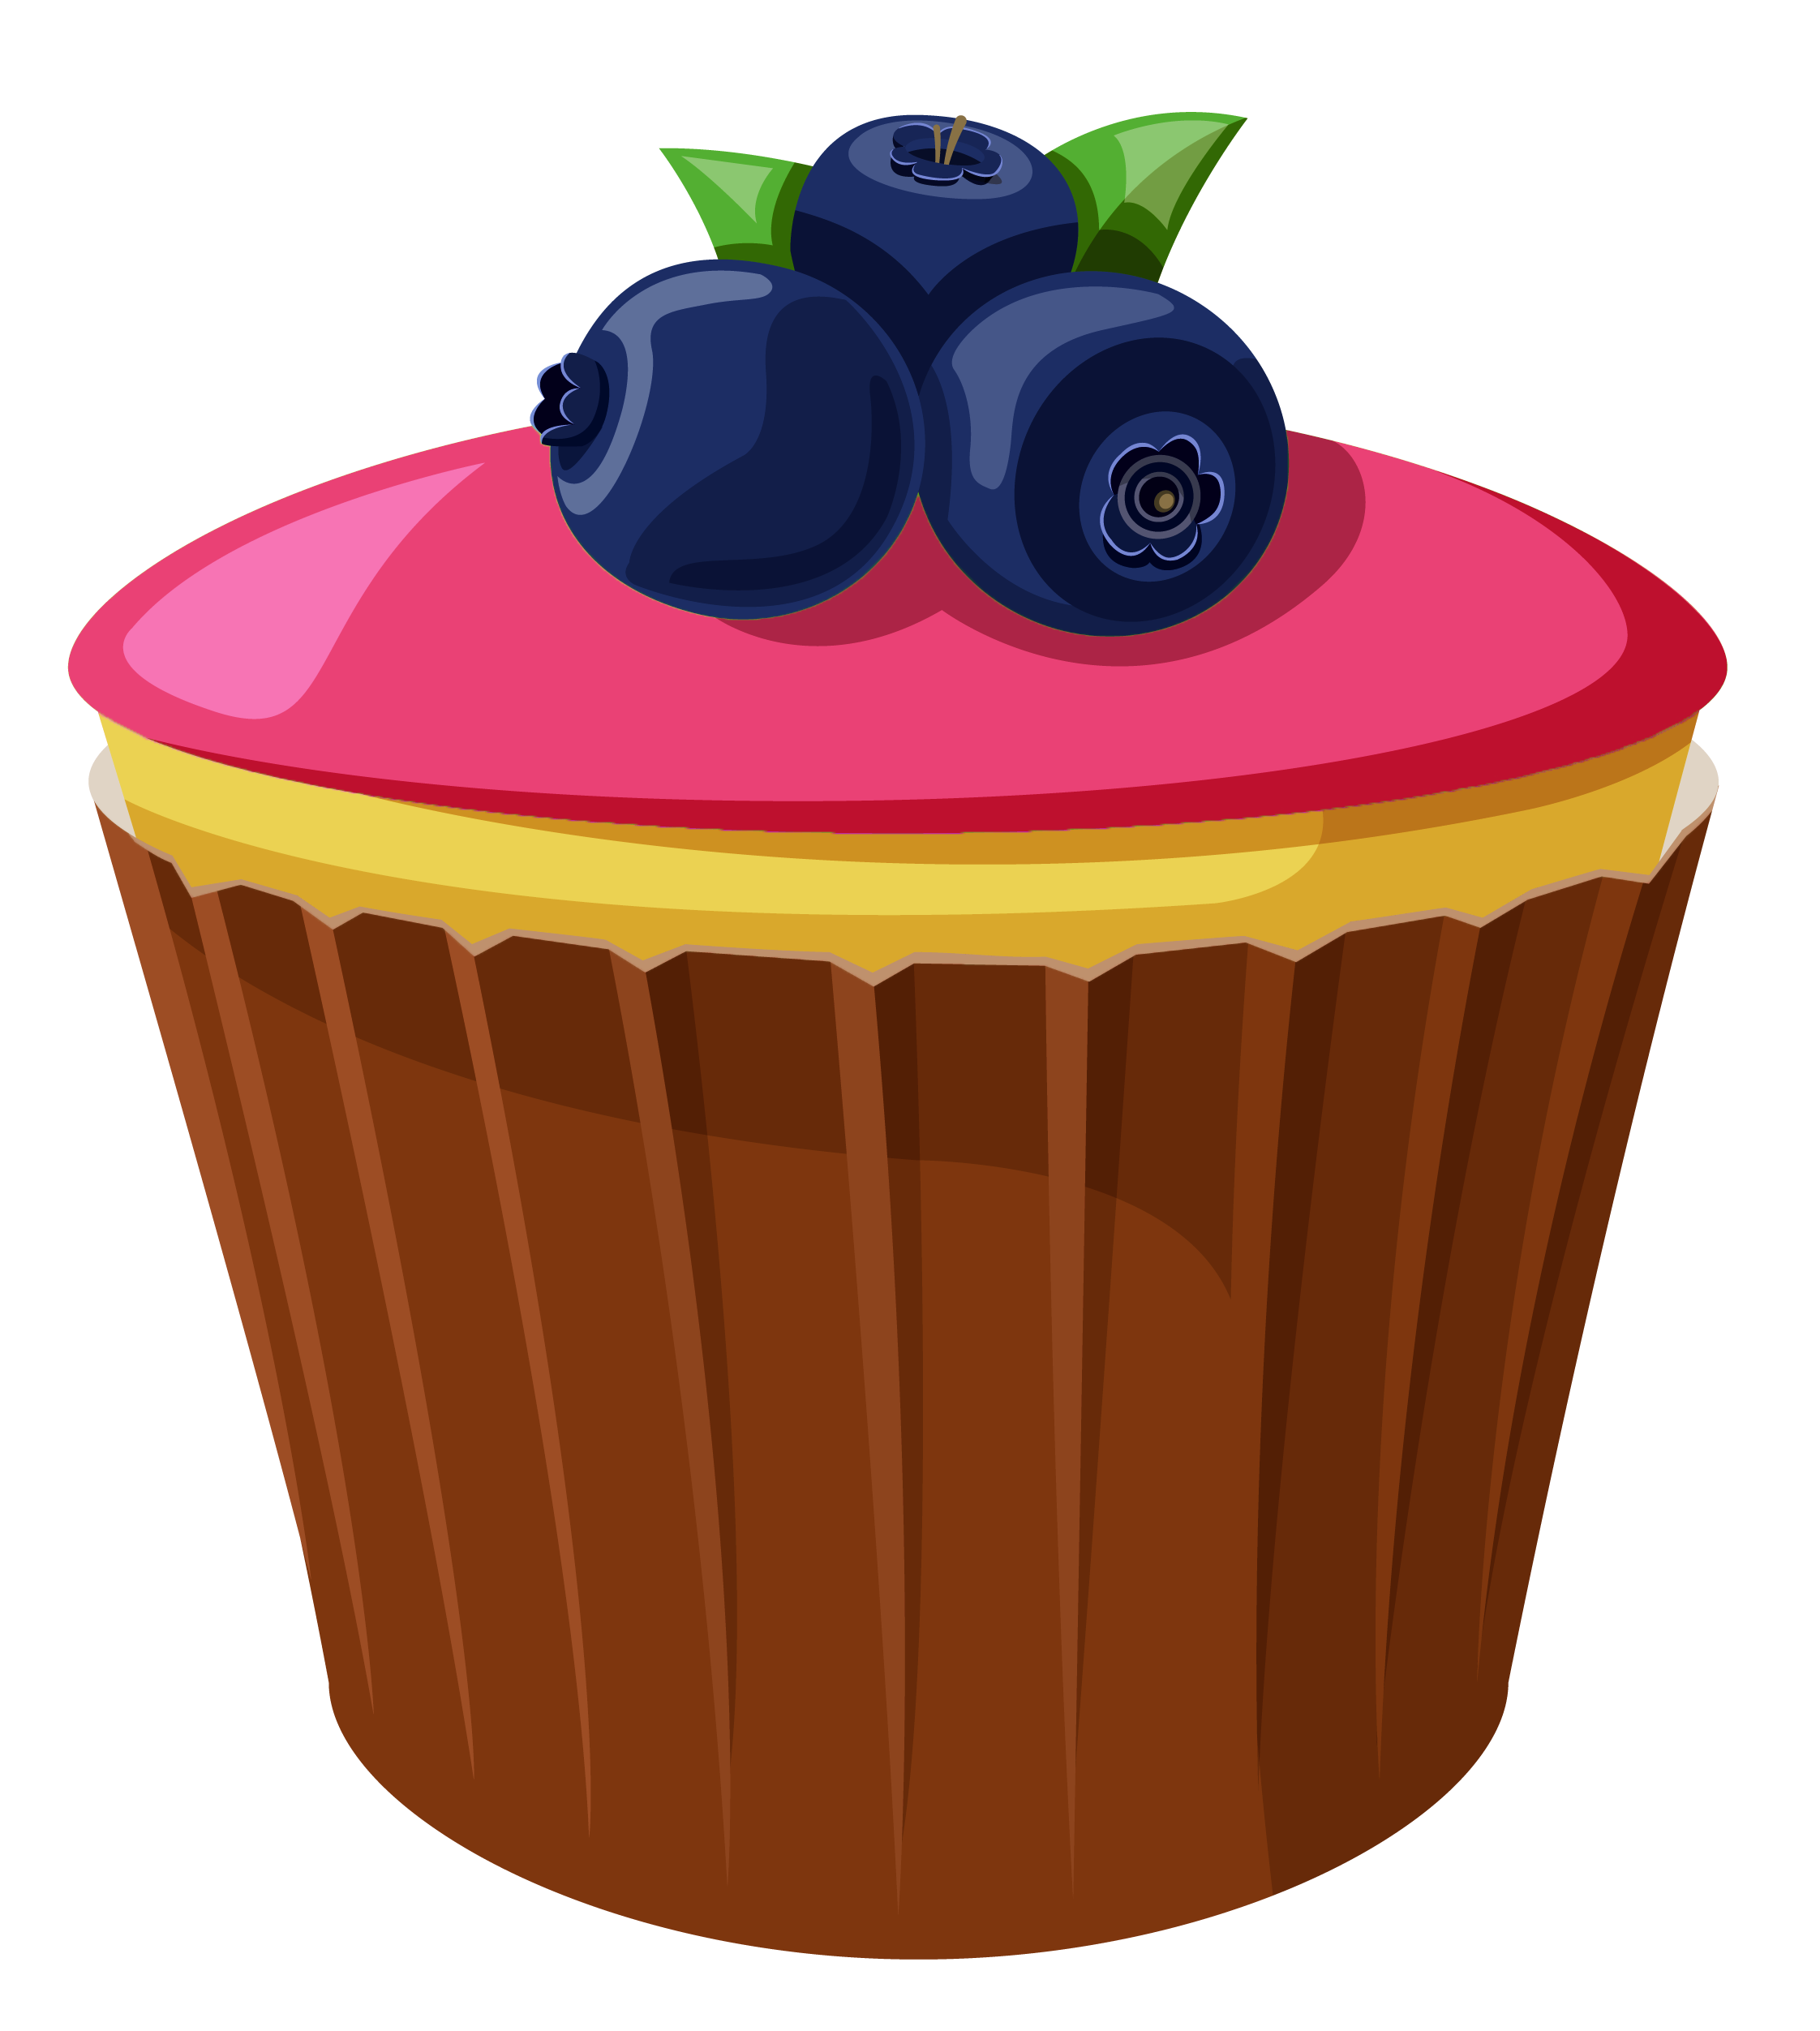 Blueberry Muffin clipart transparent Size Blueberries Mini Gallery Cake